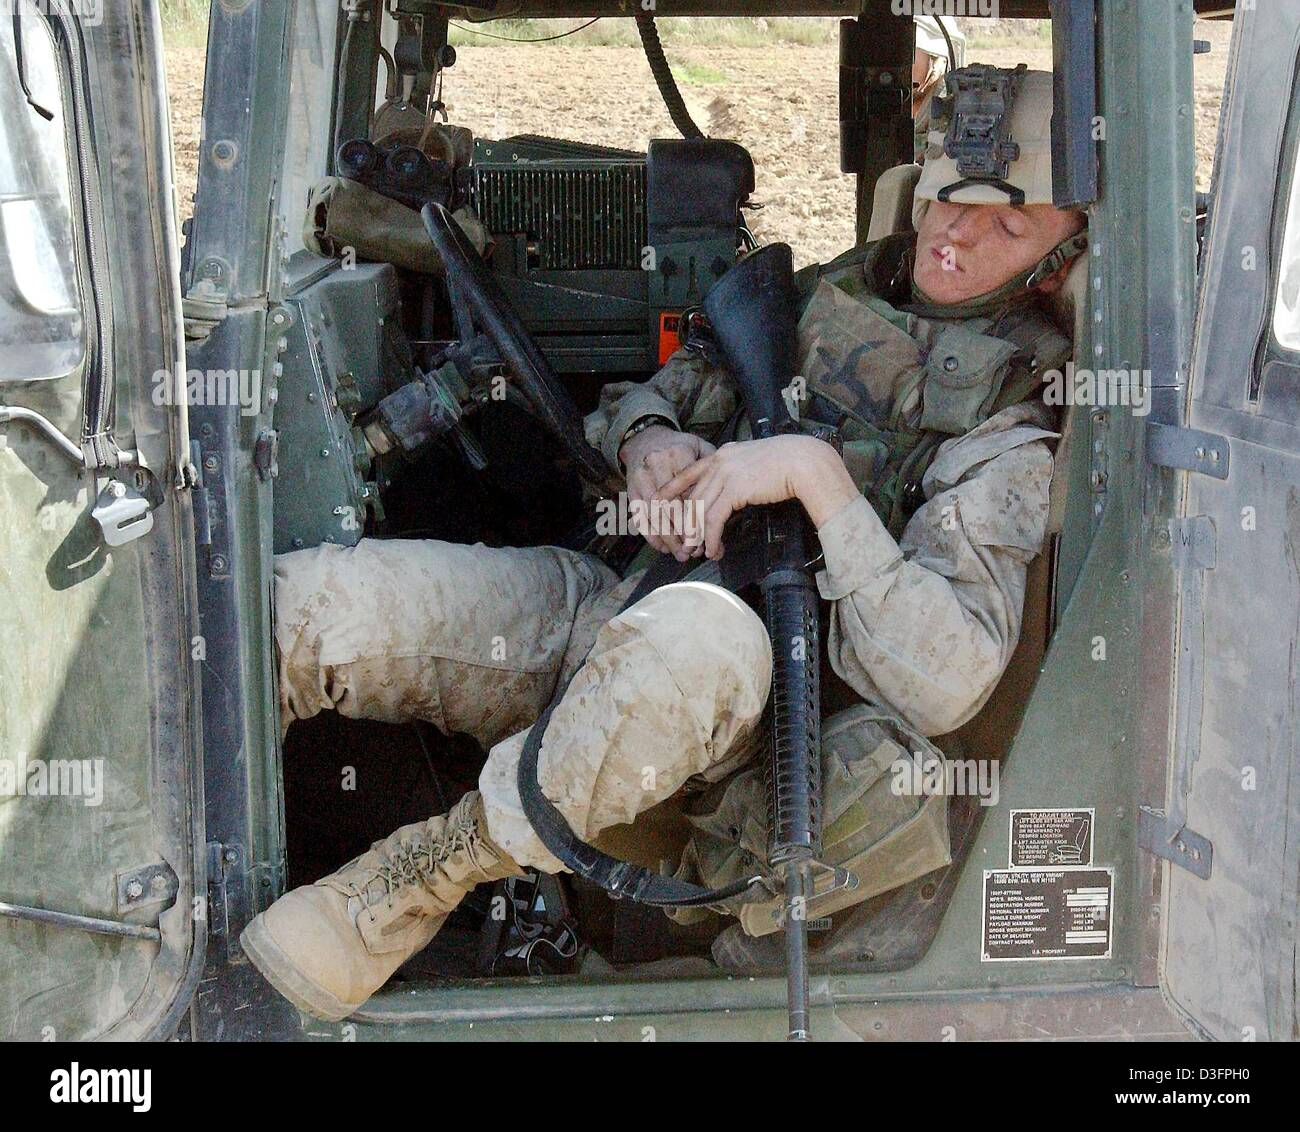 (dpa) - US Marine Sergeant Rodney Tedder fell asleep in his vehicle, in Tikrit, northern Iraq, 14 April 2003. Tikrit, - Stock Image